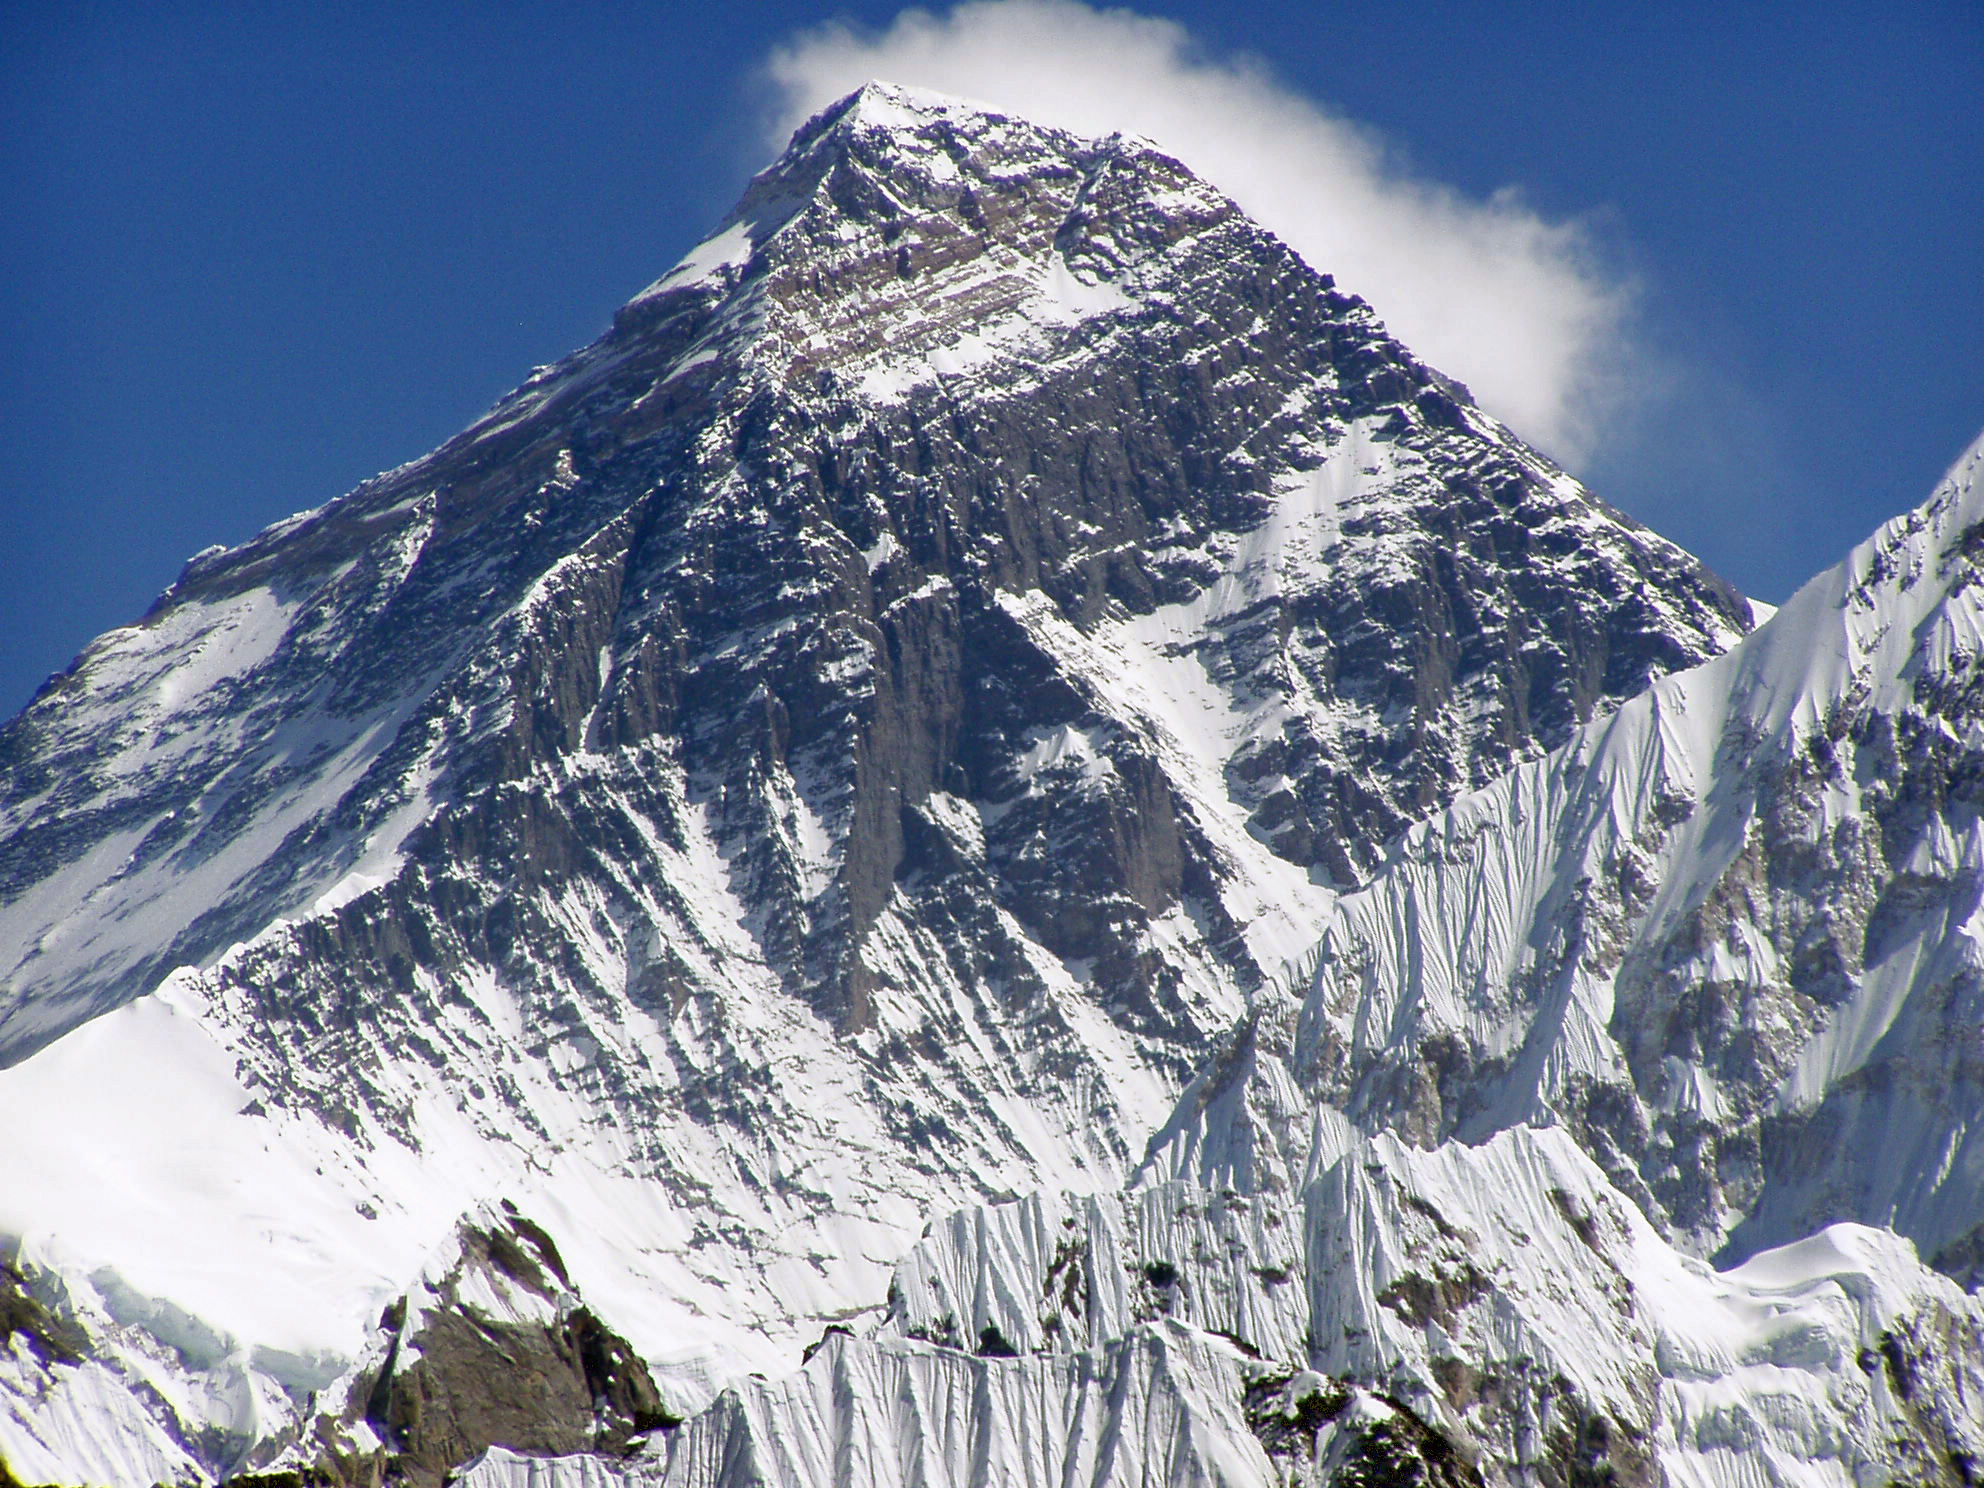 Mount 'Everest', SOUTH-FACE, 29,037 ft; Highest Peak in the Himalayas, 'Hindu Kingdom of NEPAL'